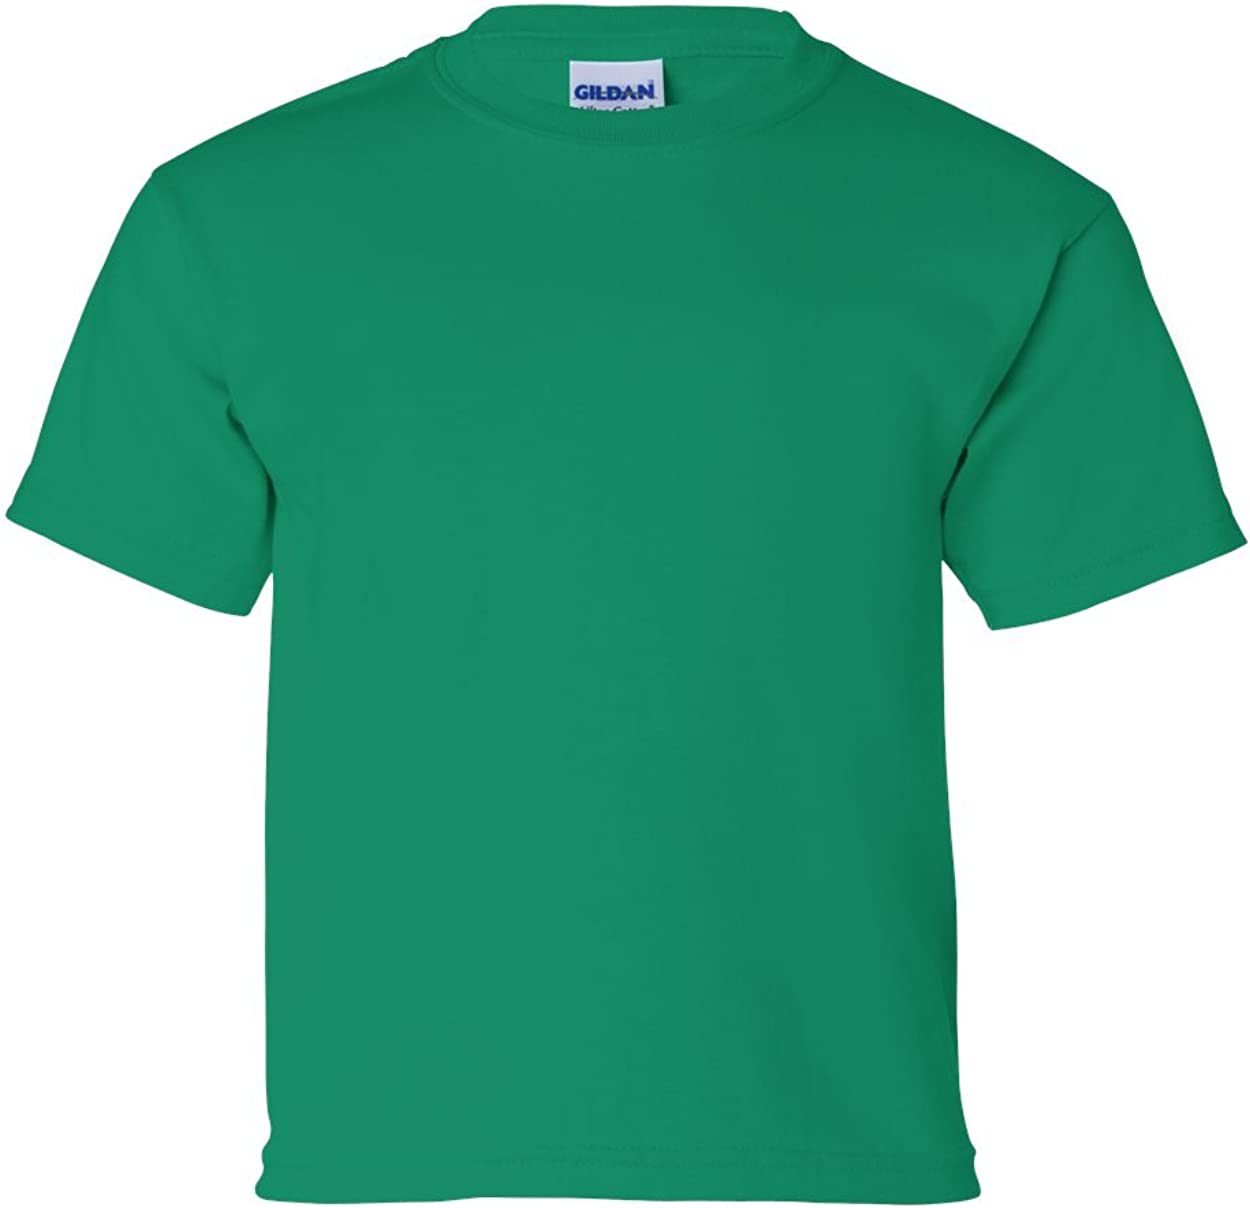 Cotton T-Shirt (G200B) Kelly Green, S (Pack of 12)